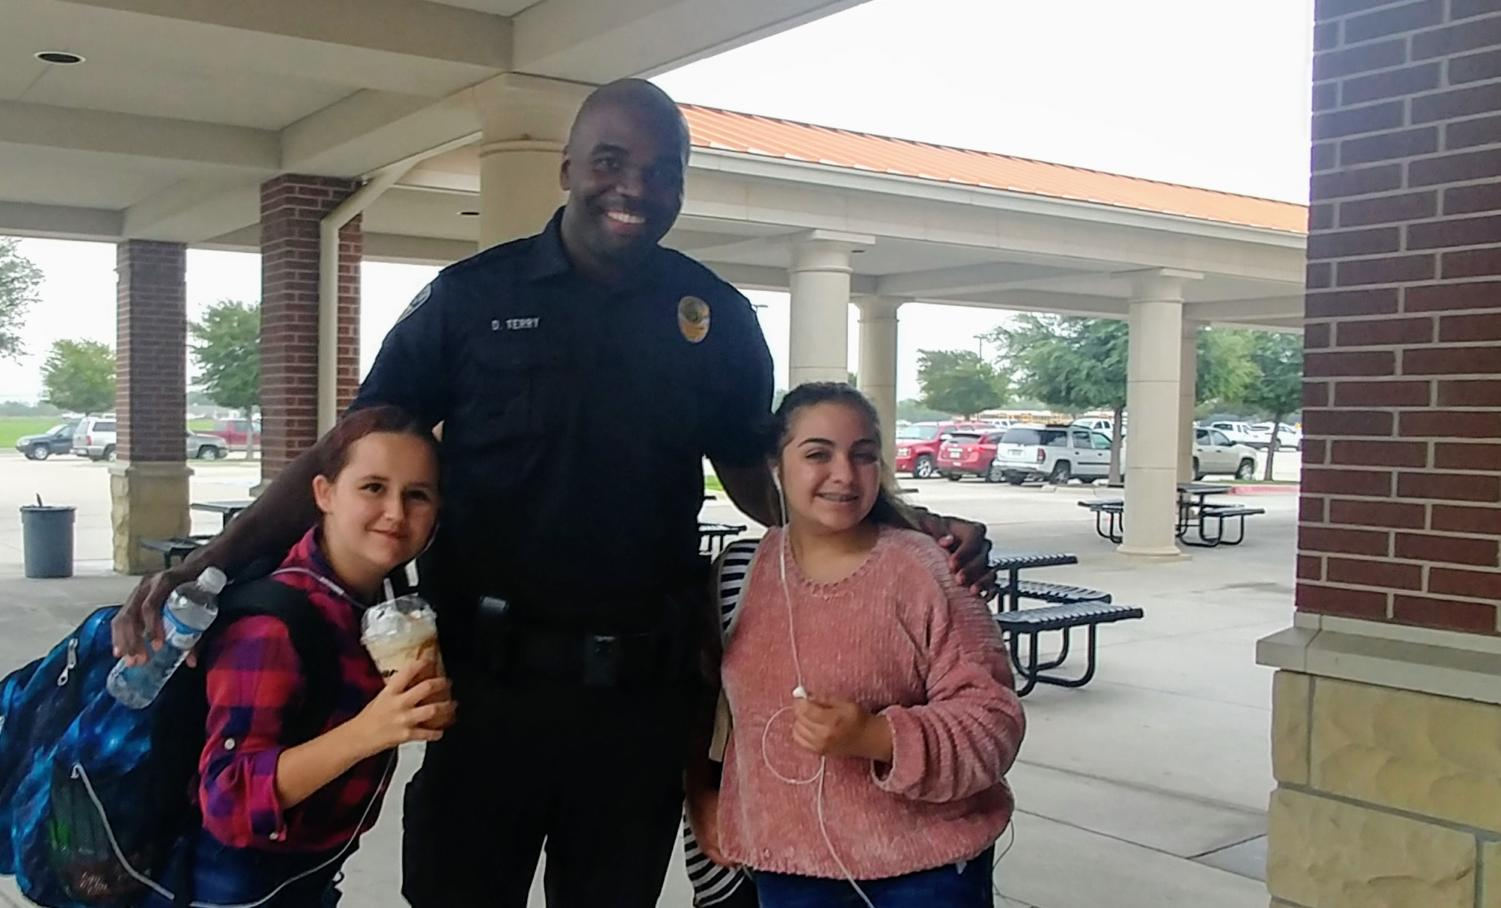 Sophomore Marissa Armont, Officer Darrell Terry and sophomore Yasmin Kazraji greet each other Wednesday, Sept. 12, at the patio entrance on the way into school.    The trio said they meet up often to talk, including how to navigate being new in a high school of more than 3,000 students.